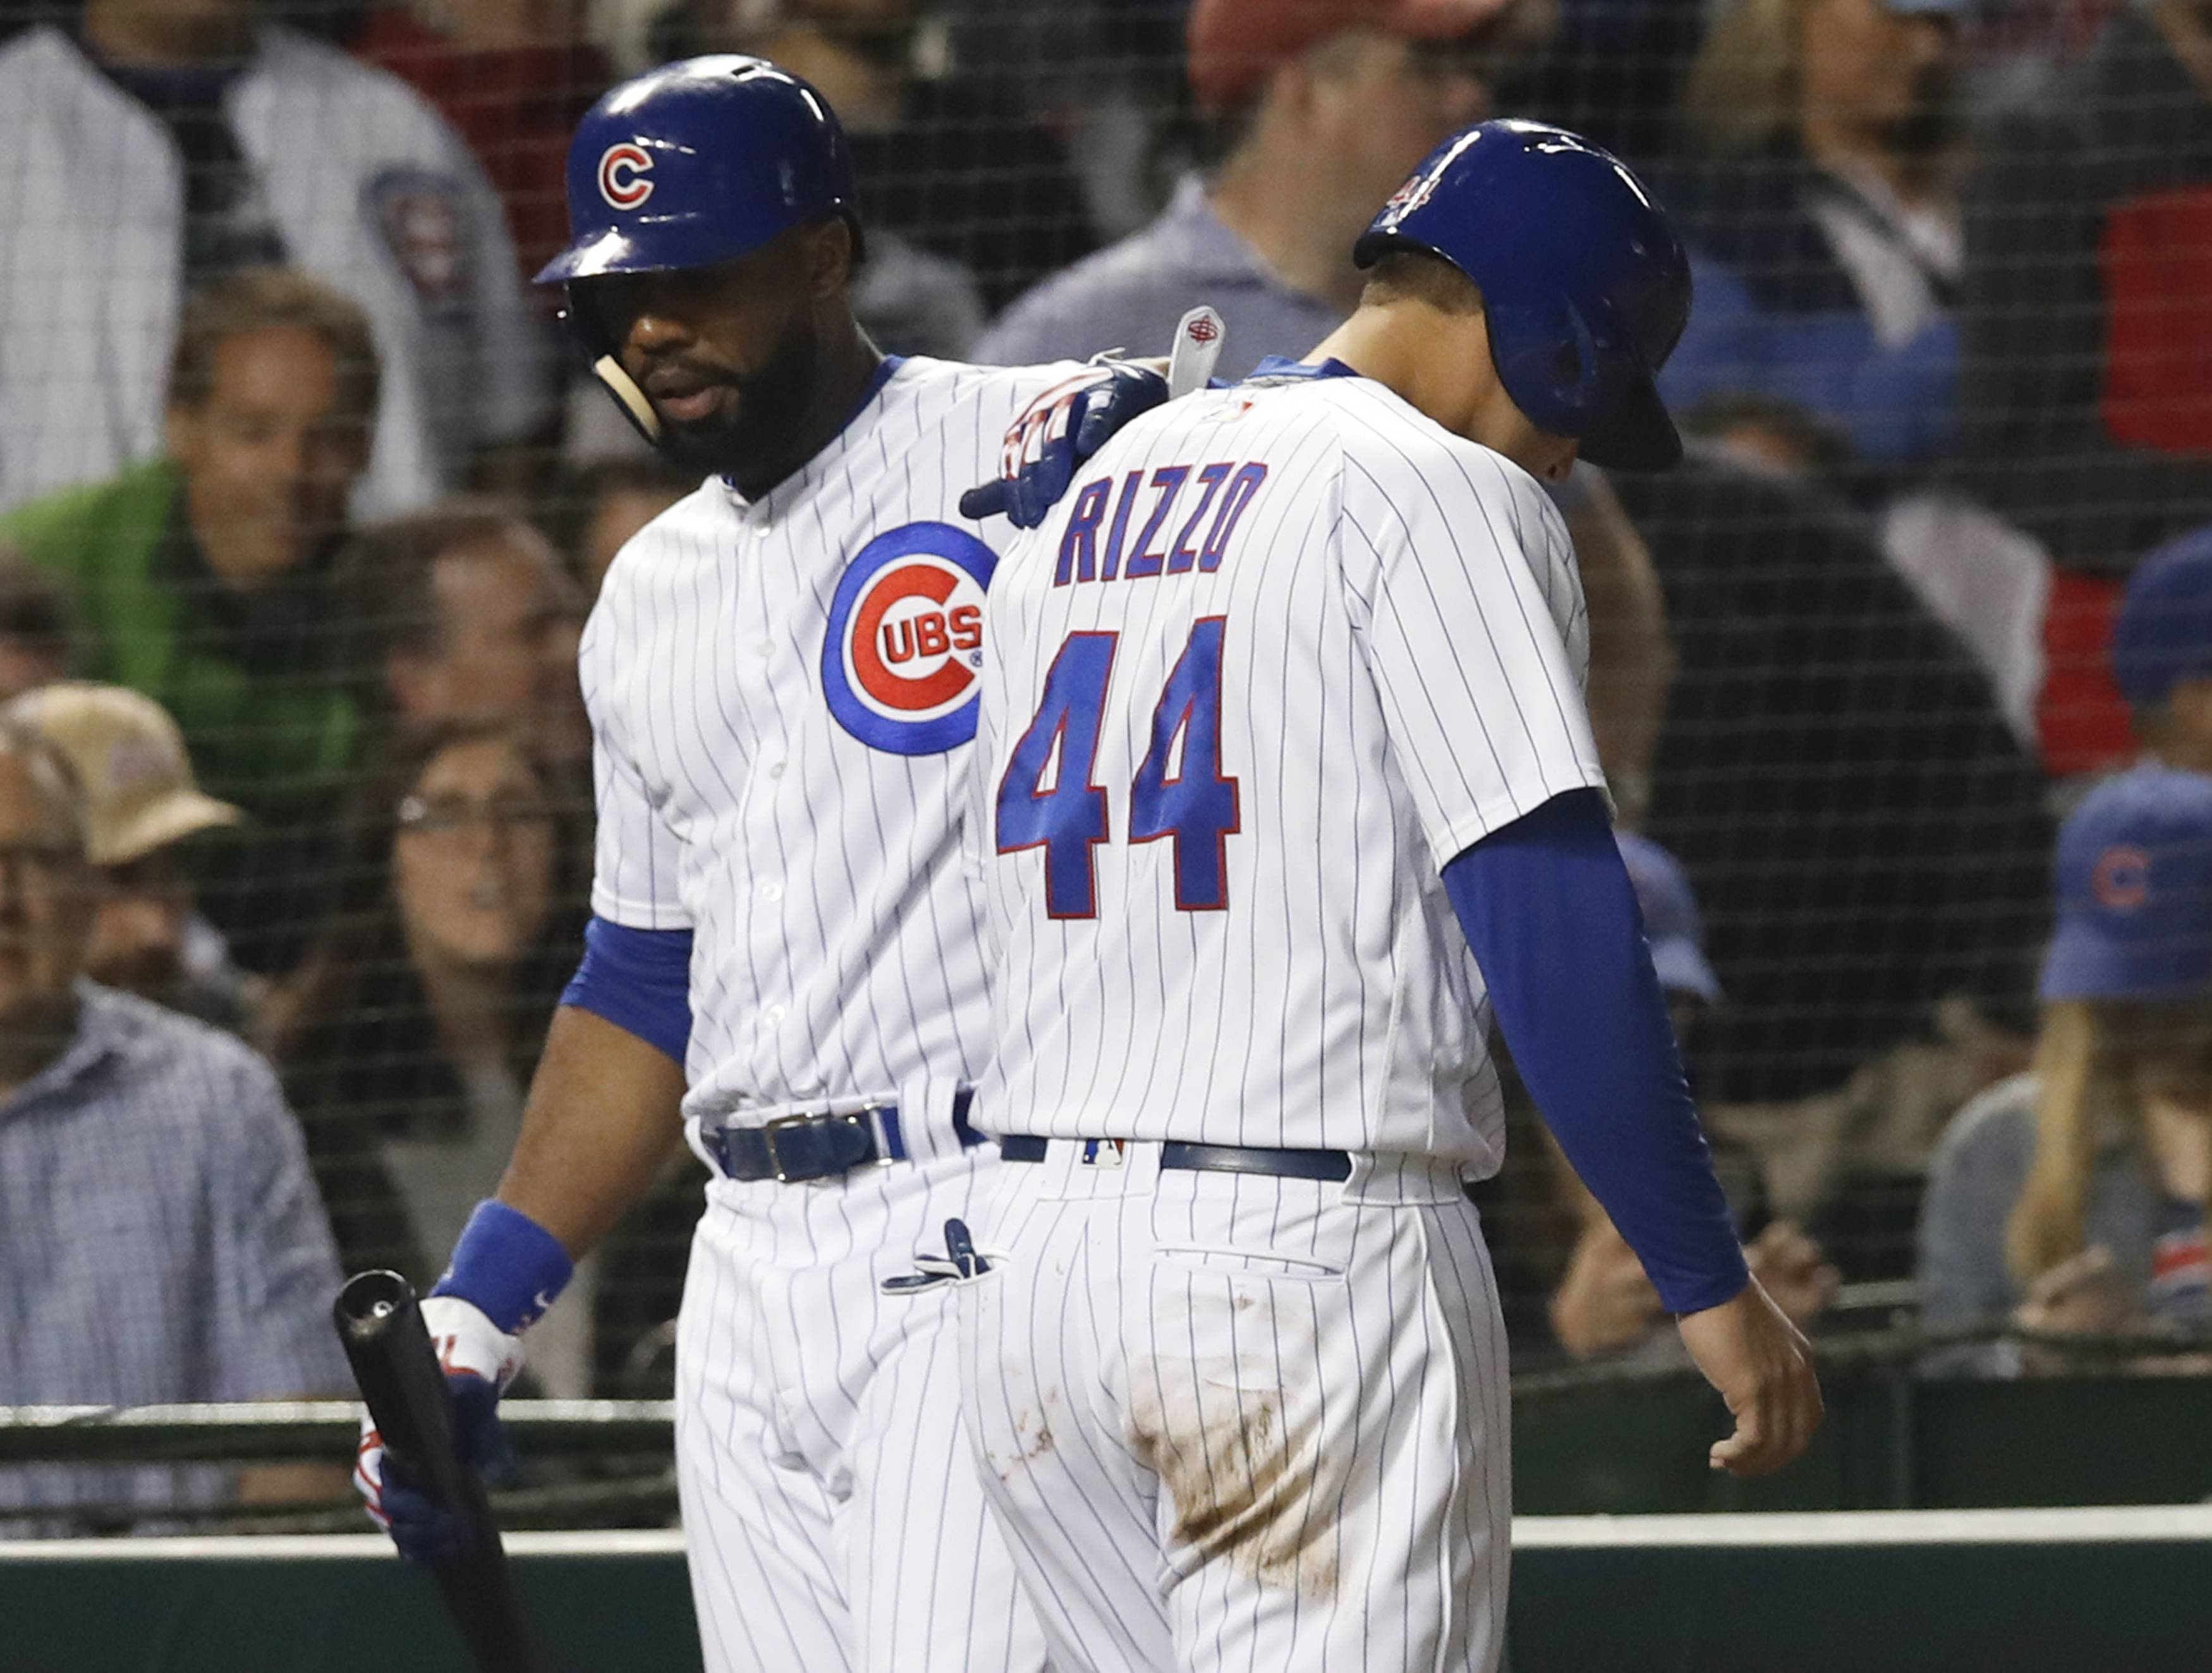 Chicago Cubs' Anthony Rizzo, right, is consoled by Jason Heyward as he walks back to the dugout after being tagged out at home during the seventh inning of the team's baseball game against the Cleveland Indians on Wednesday, May 23, 2018, in Chicago. (AP Photo/Jim Young)